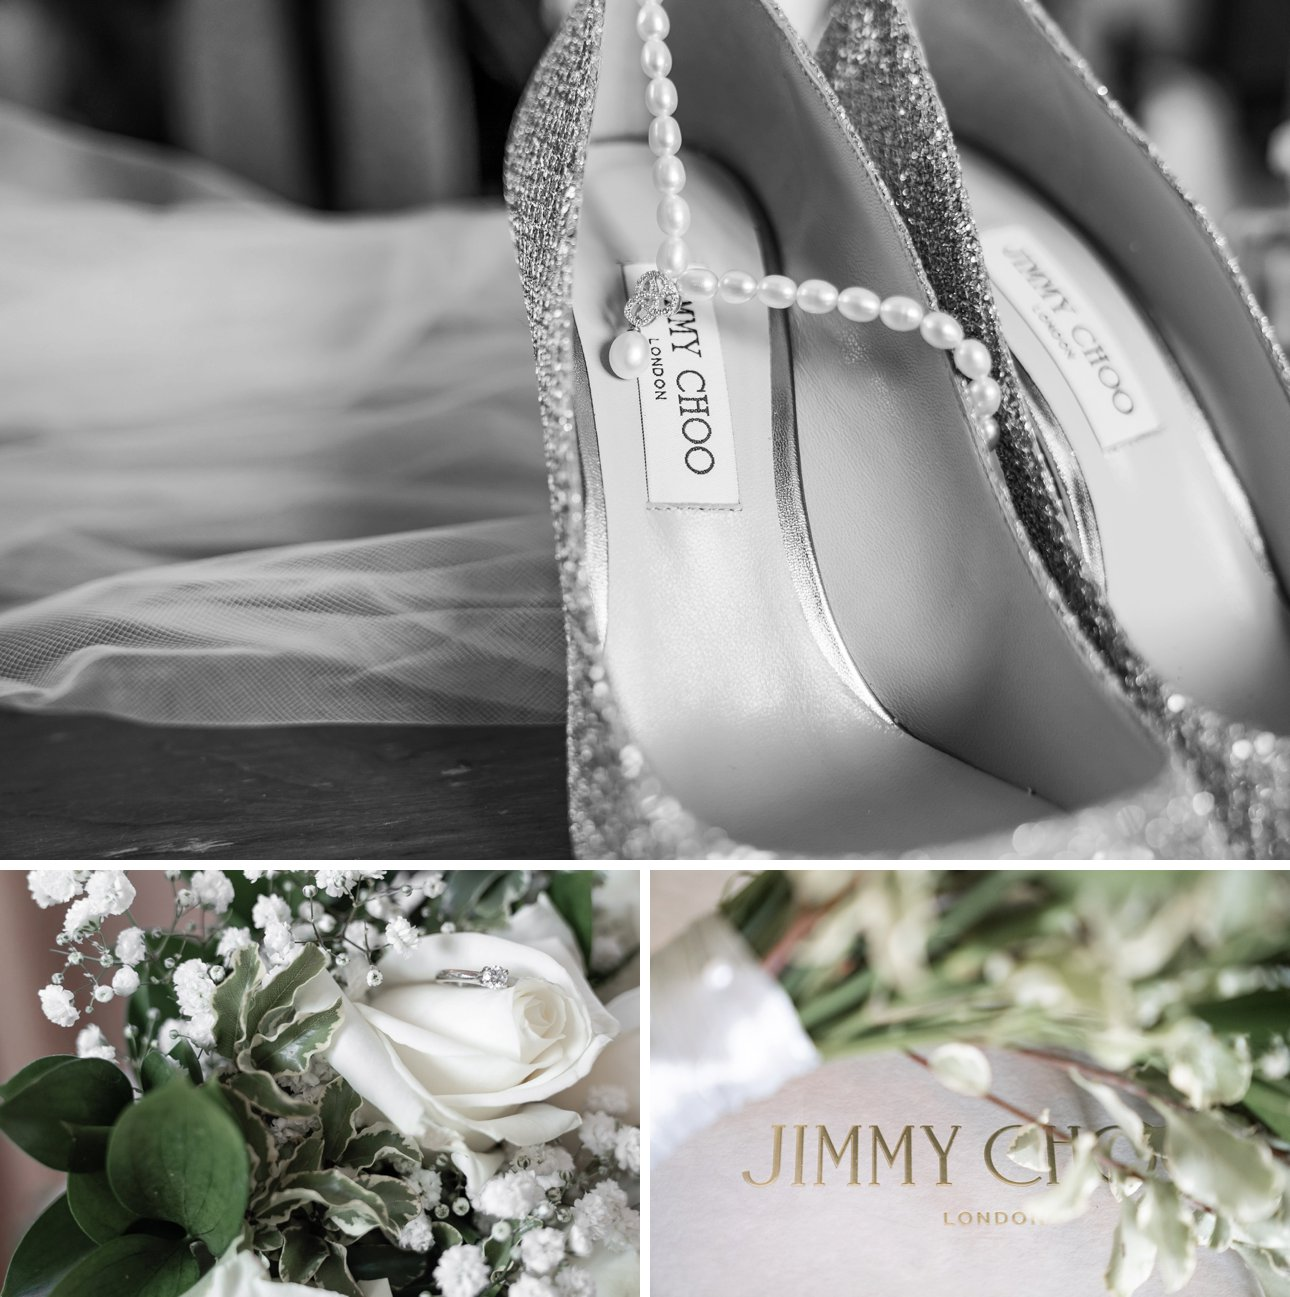 This Borehamwood wedding had shoes from Jimmy Choo, pearls from The Lido Collection and a dress from David's Bridal.